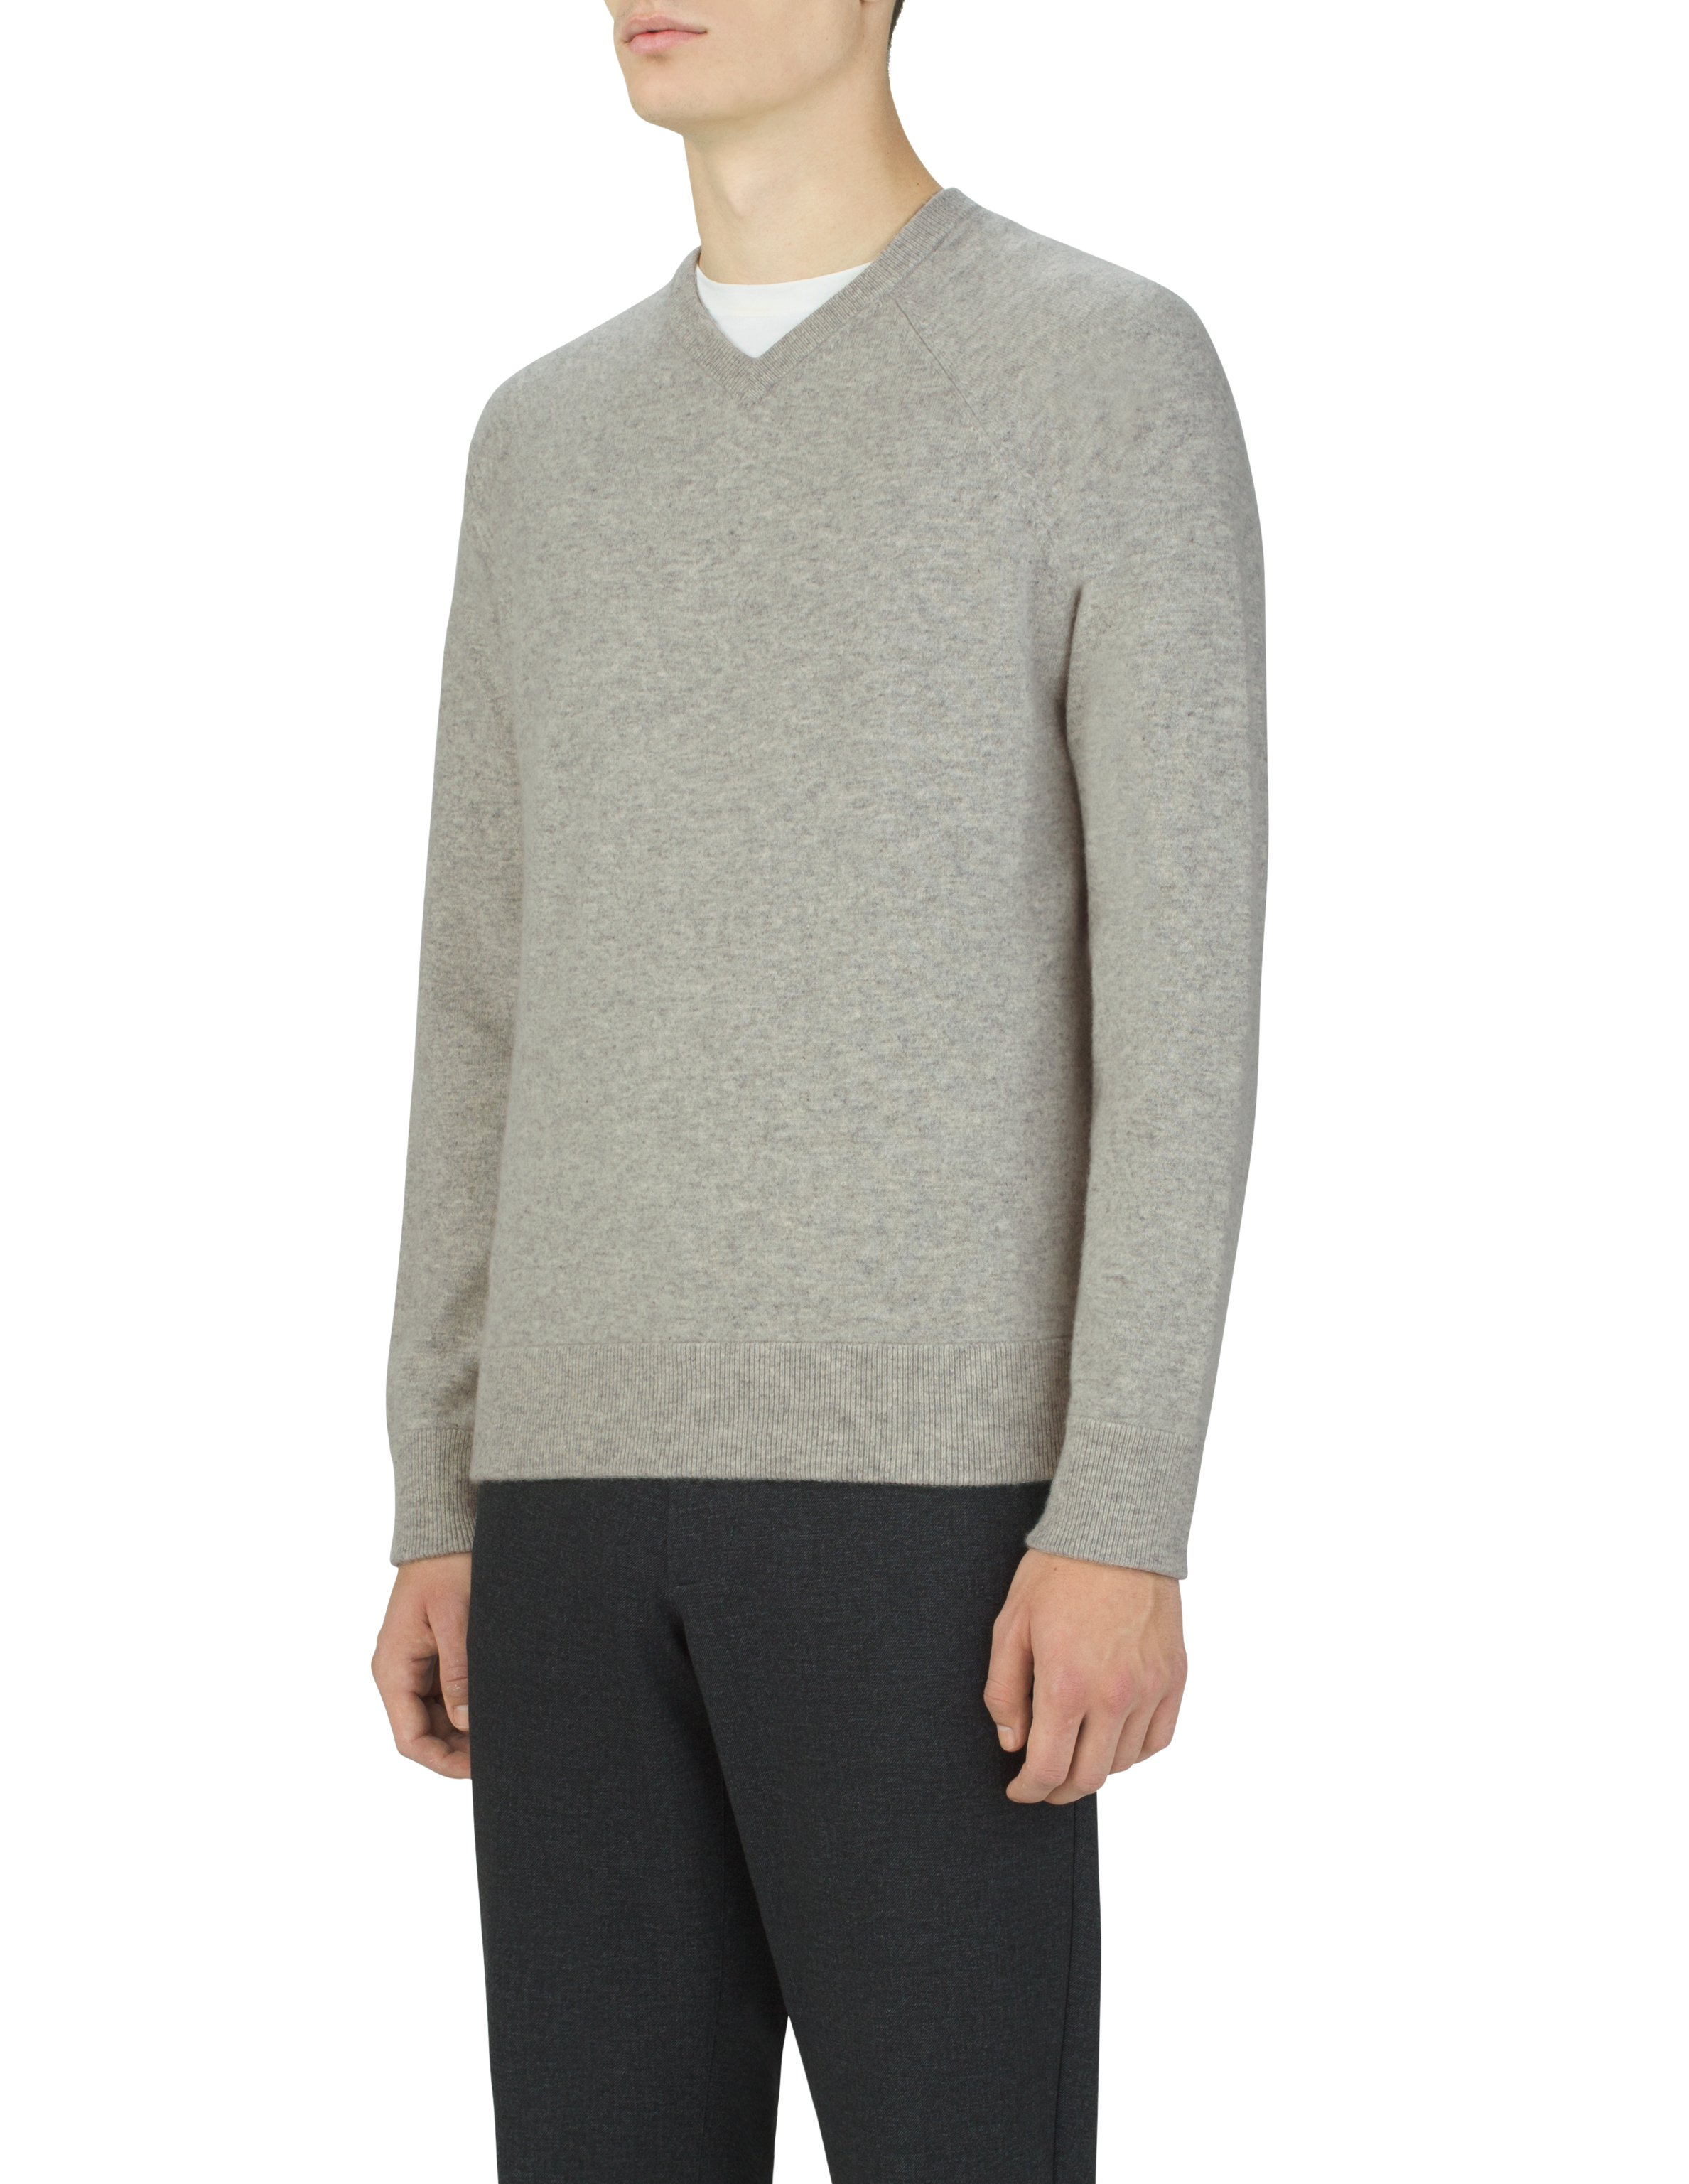 Men's UAS Gridknit Cashmere V-Neck Sweater, LIGHT HEATHER GRAY